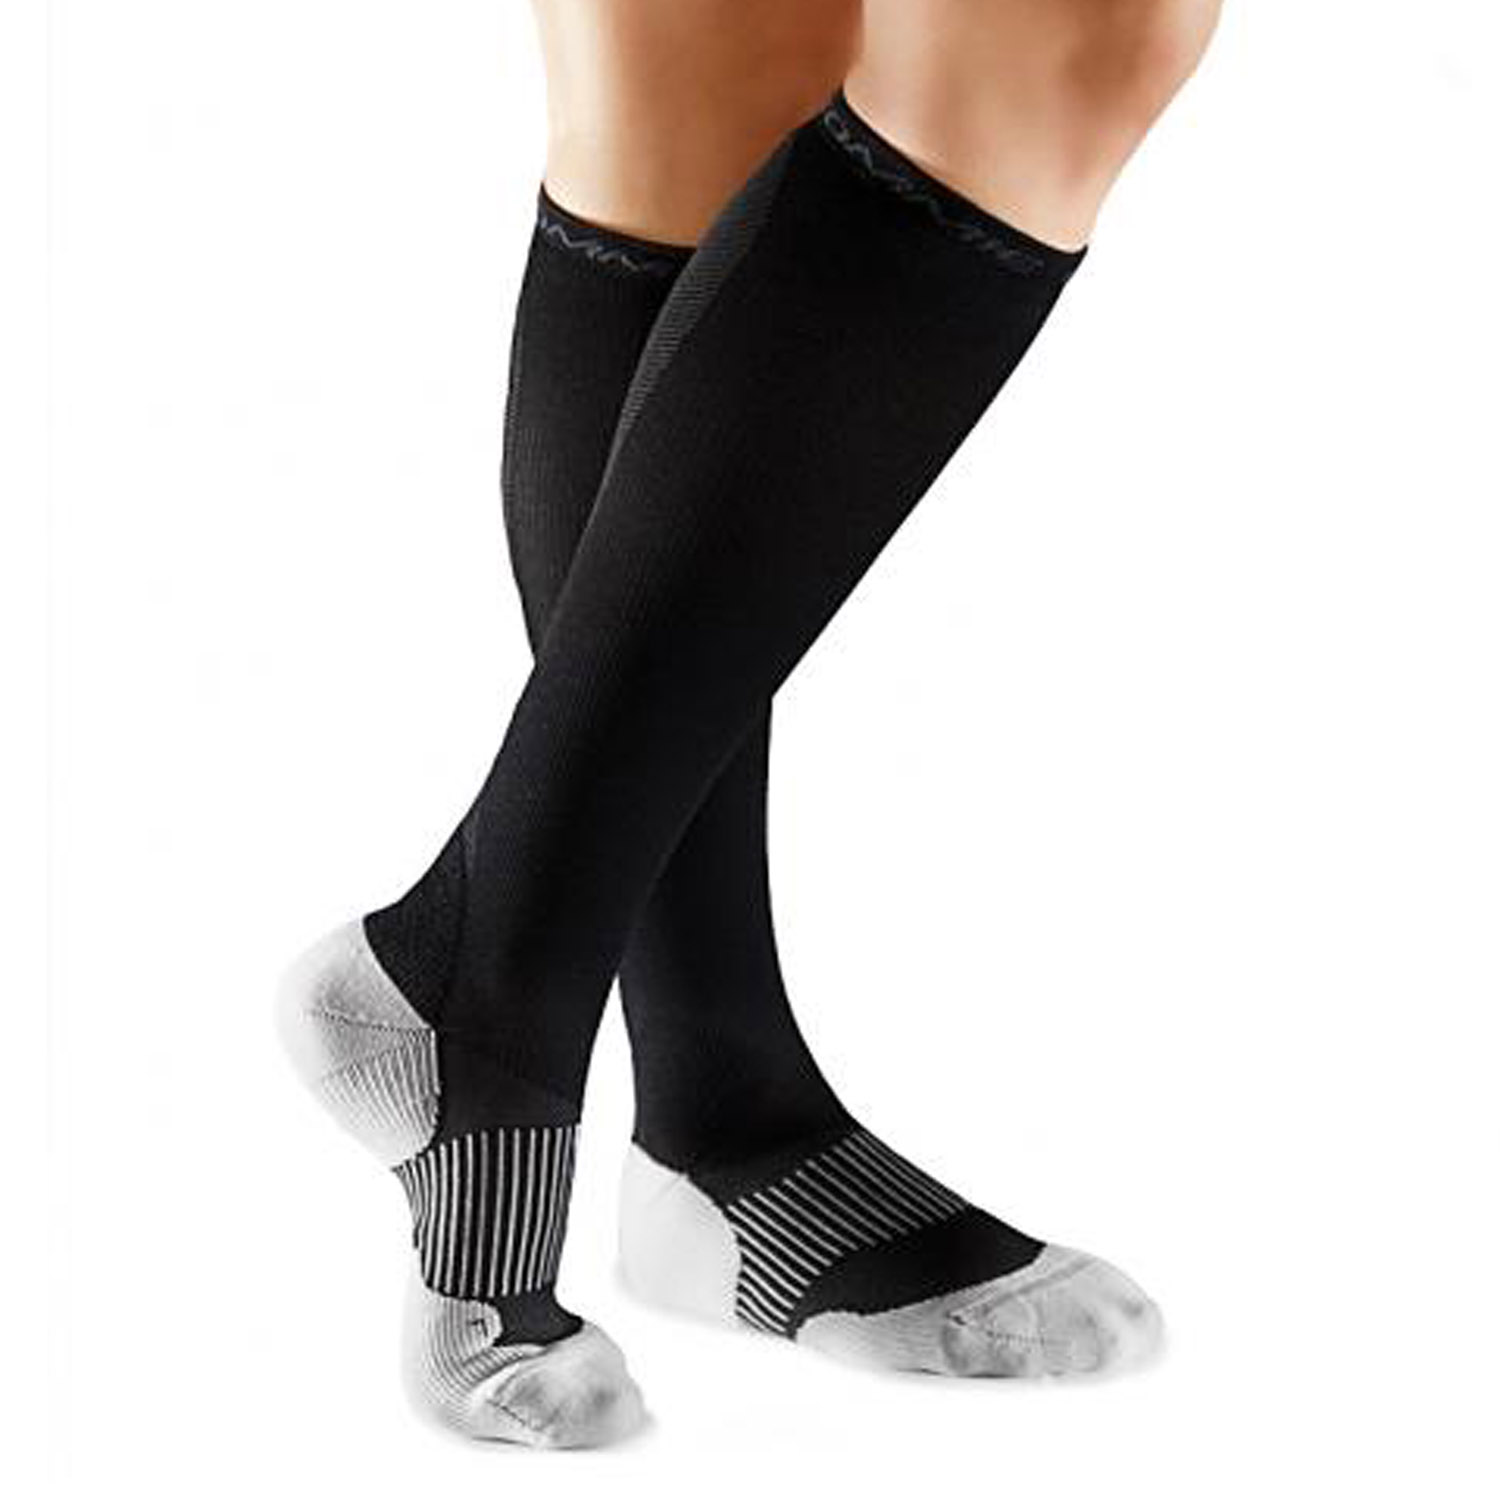 Tommie Copper Women's Graduated Compression Sock